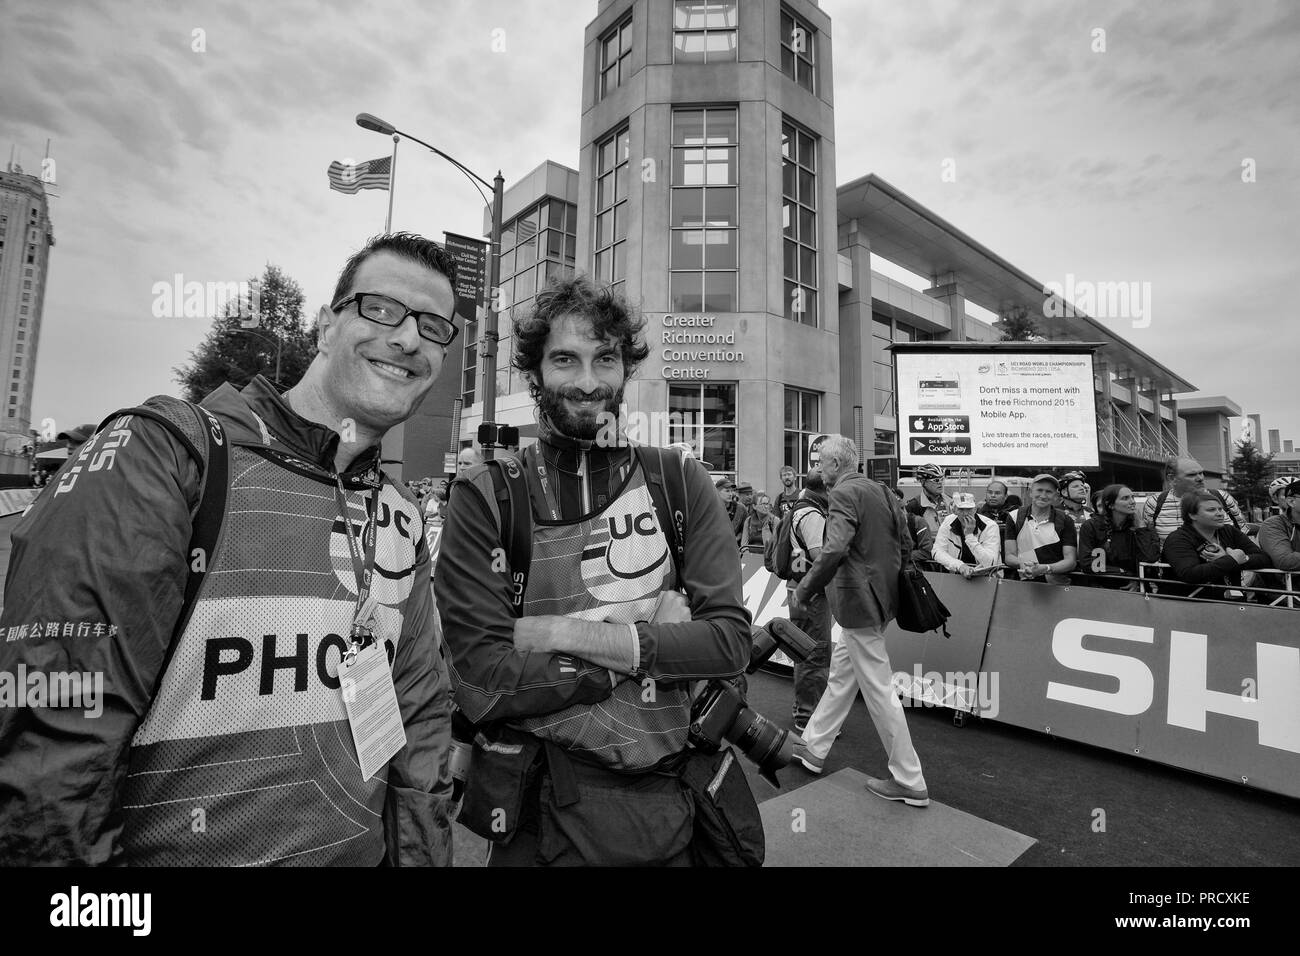 Cycling Championship Black and White Stock Photos & Images